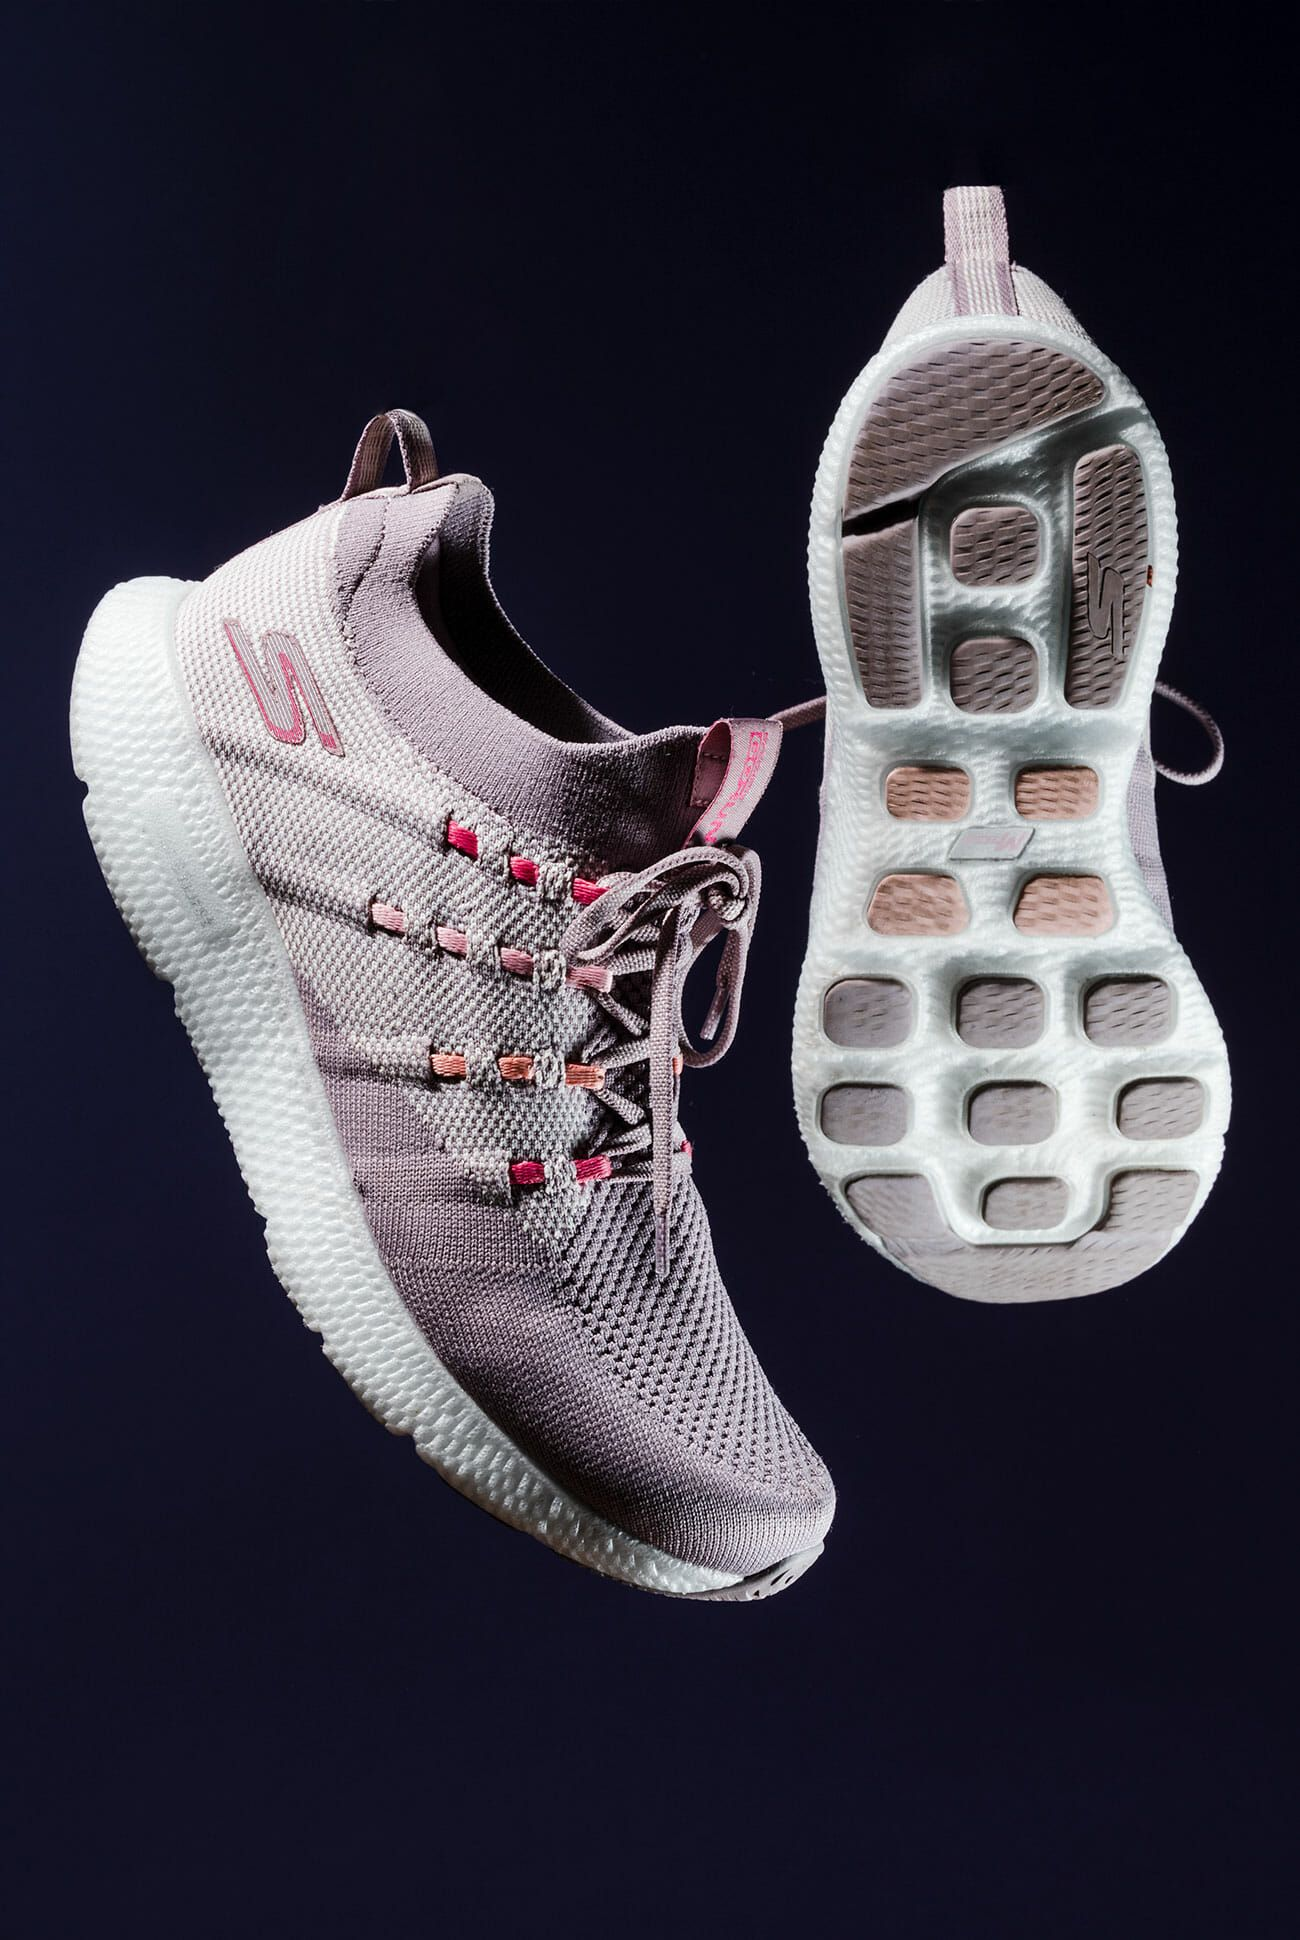 Skechers Go Run 7 Review: An Everyday